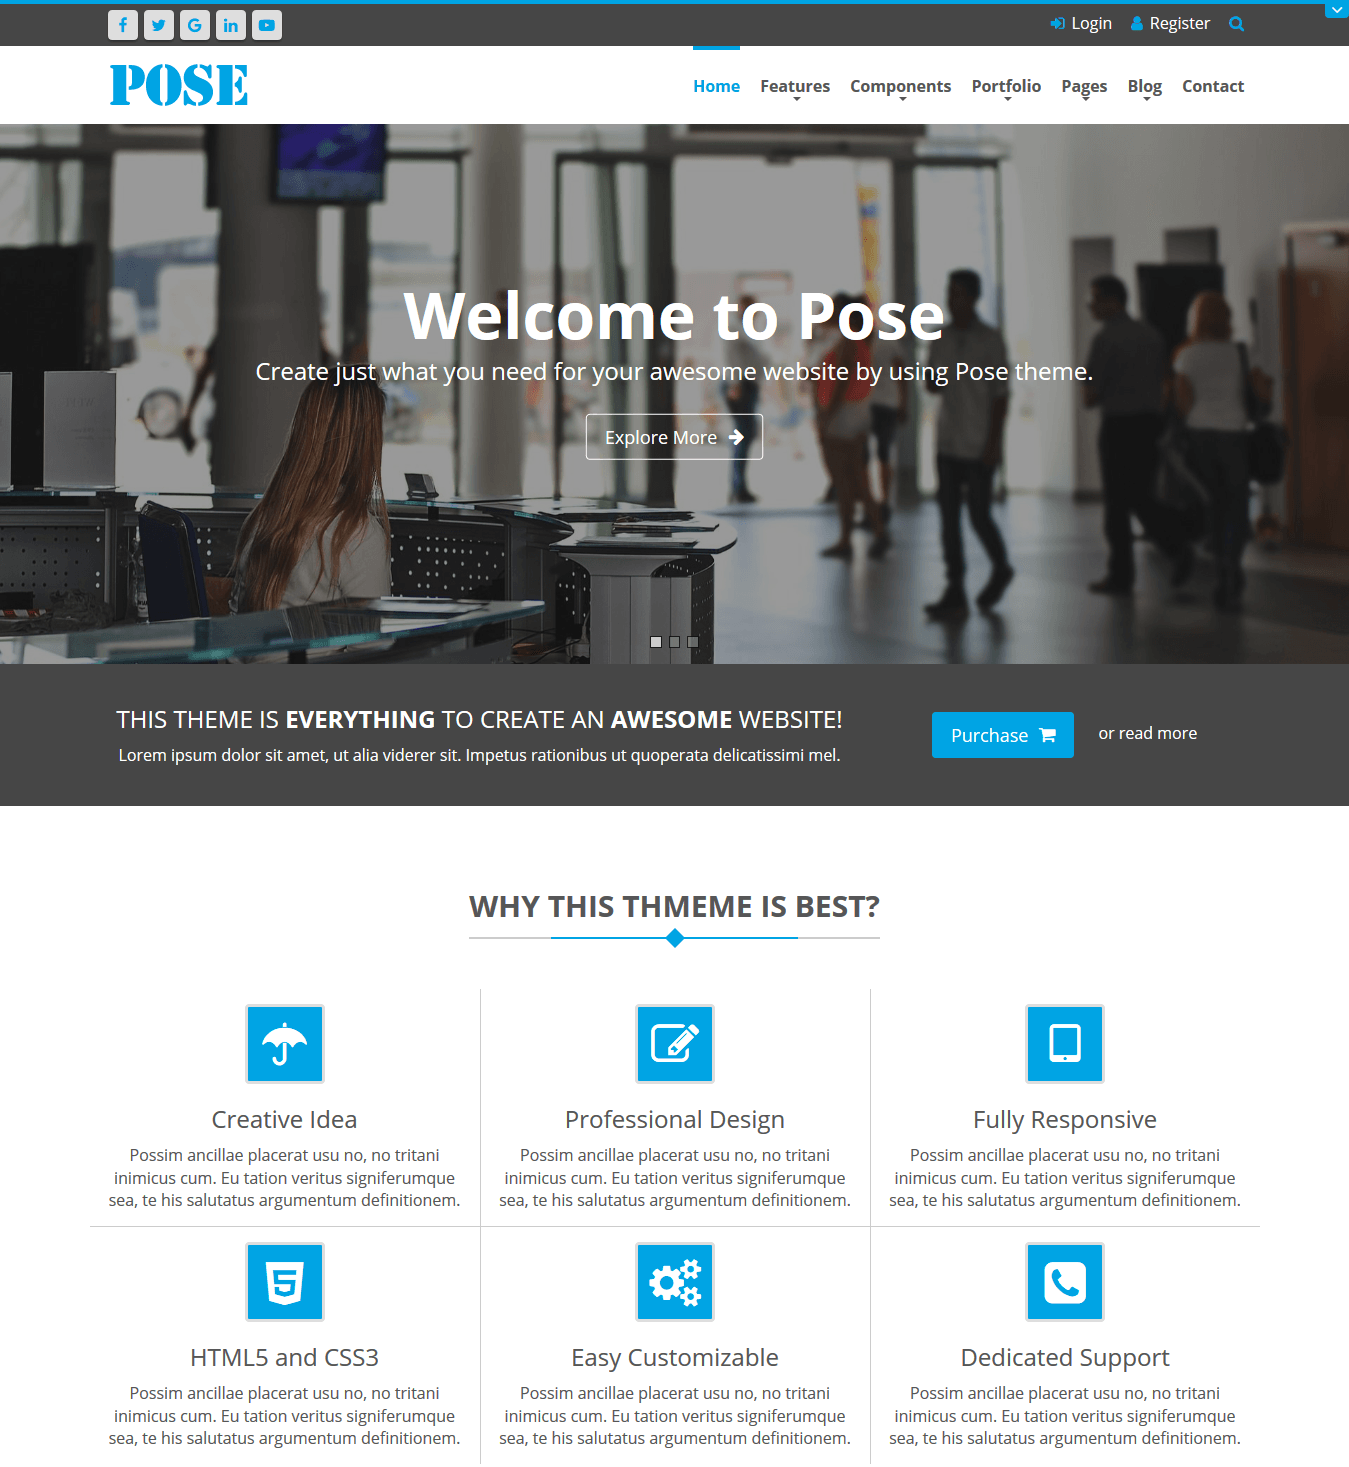 DNN Store > Home > Product Details > Pose Responsive Theme